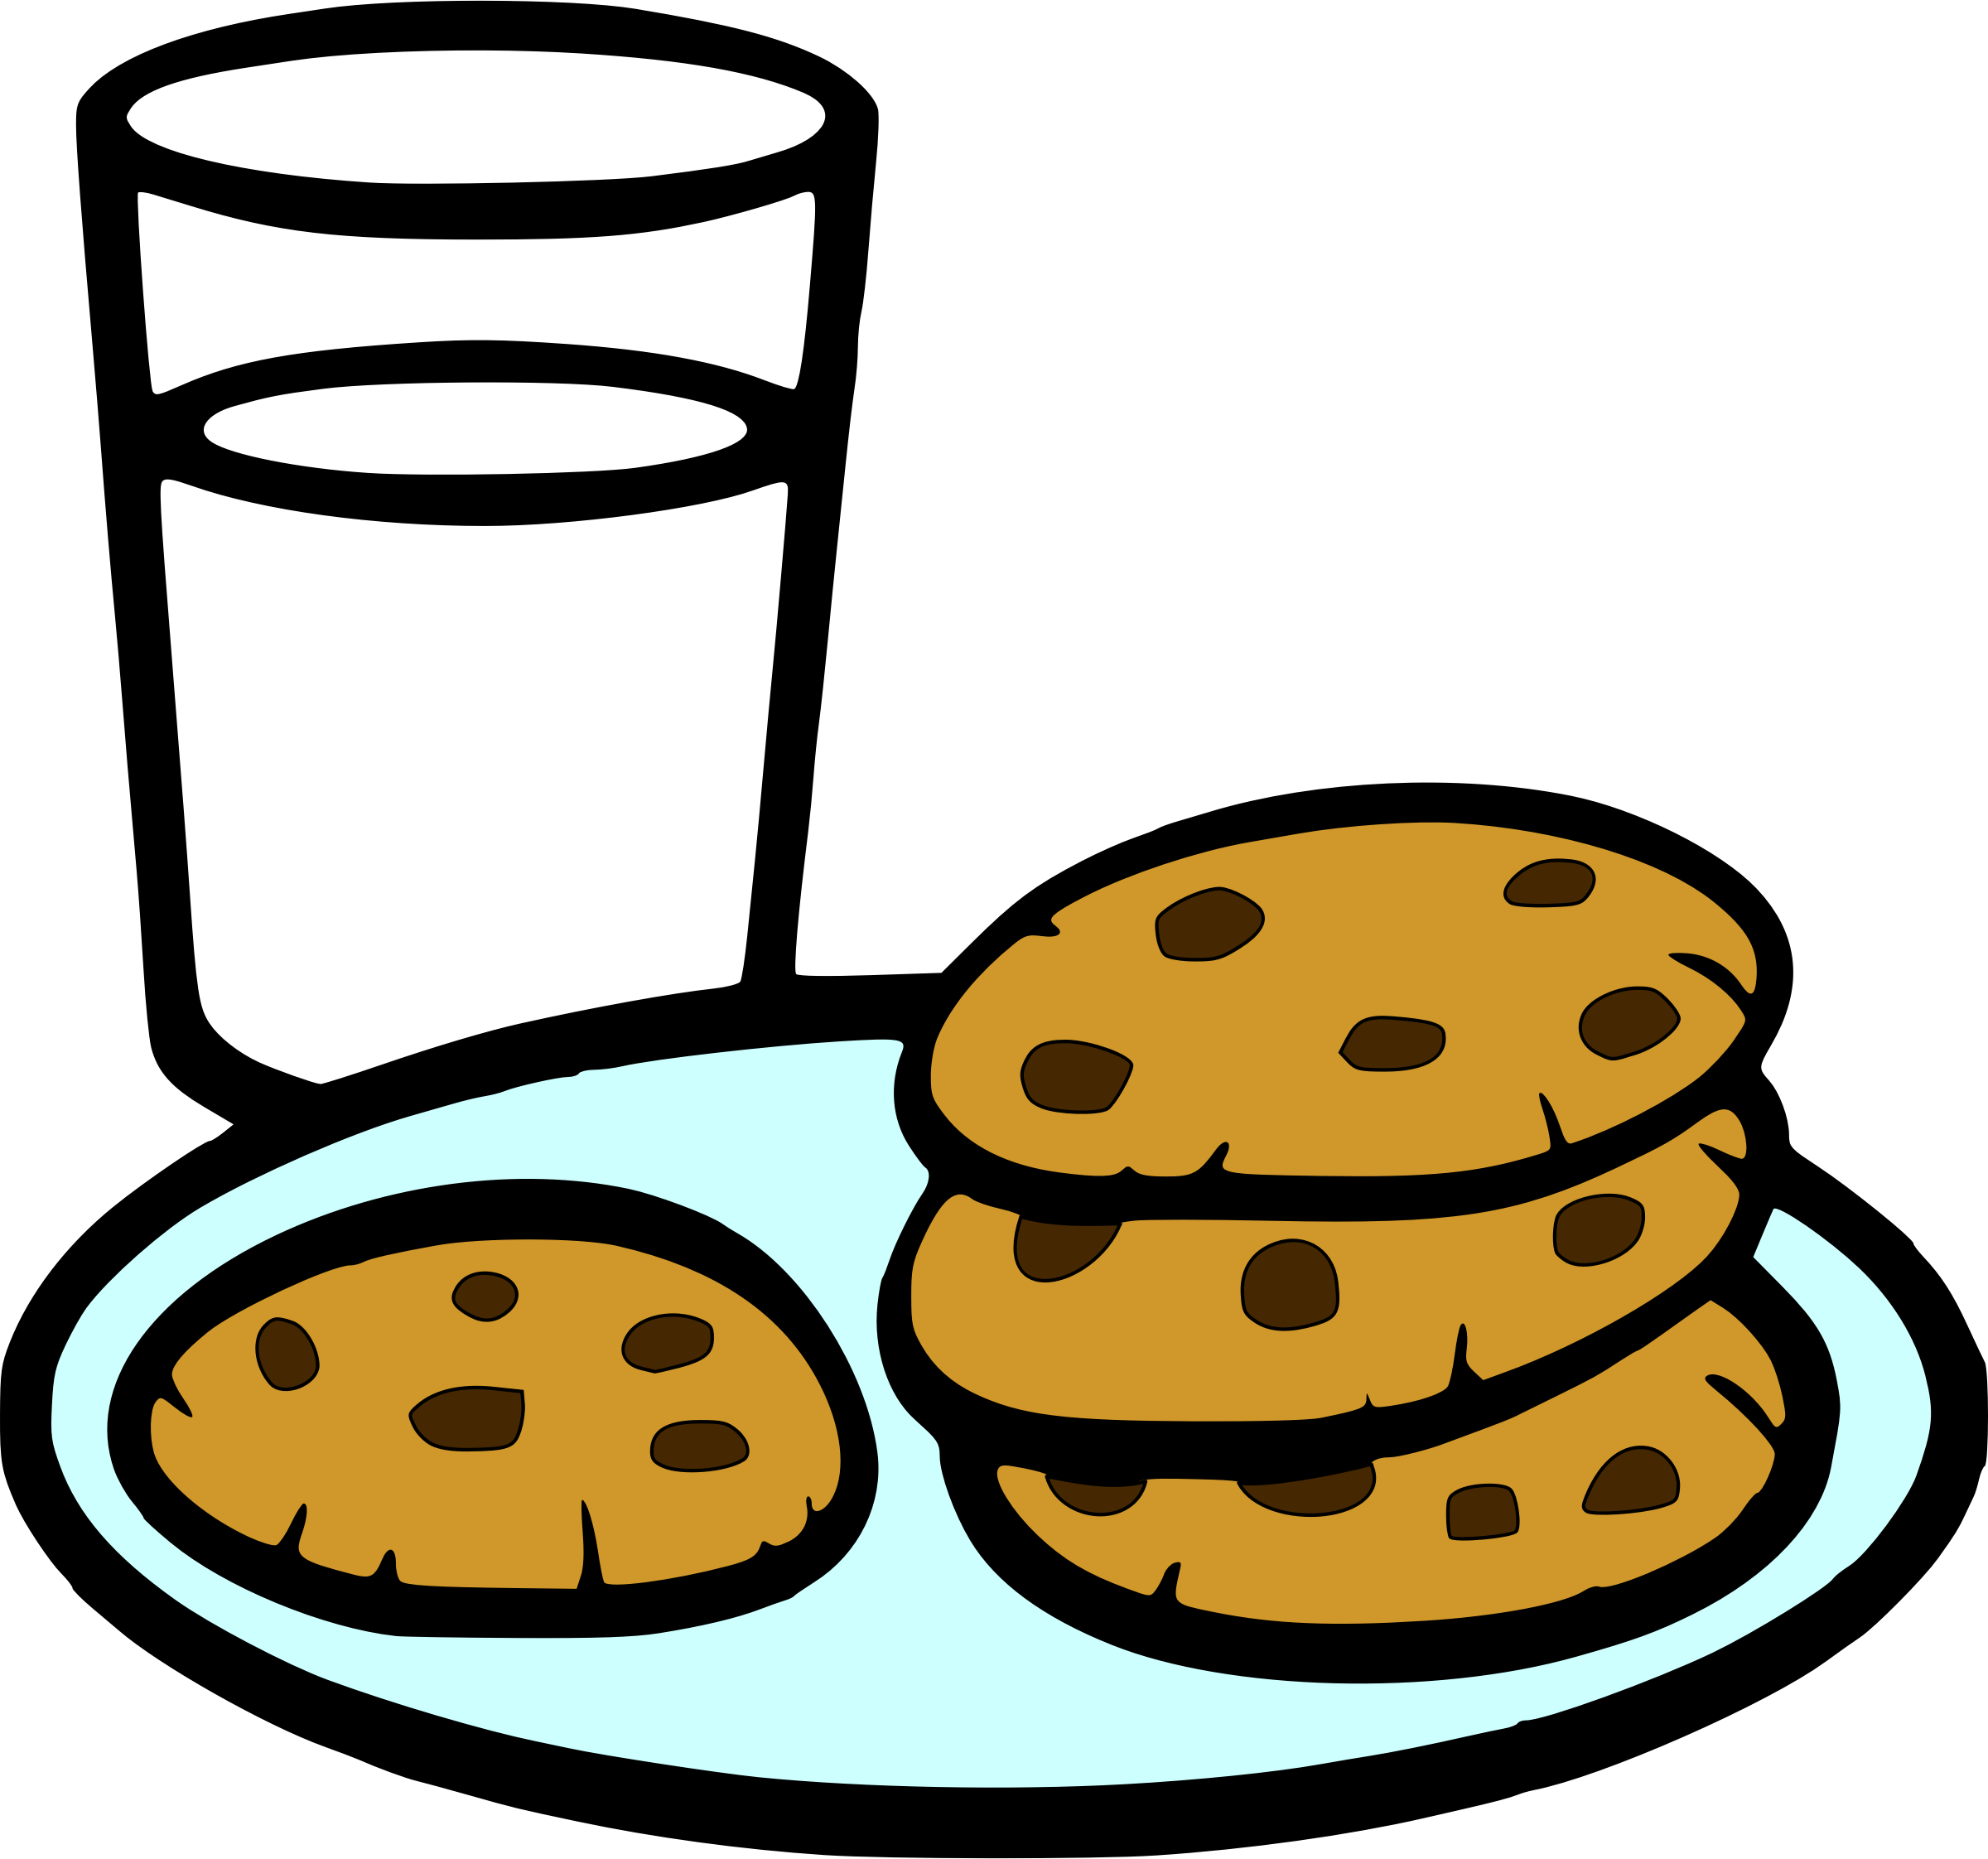 clip transparent library And milk big image. Cookies clipart.